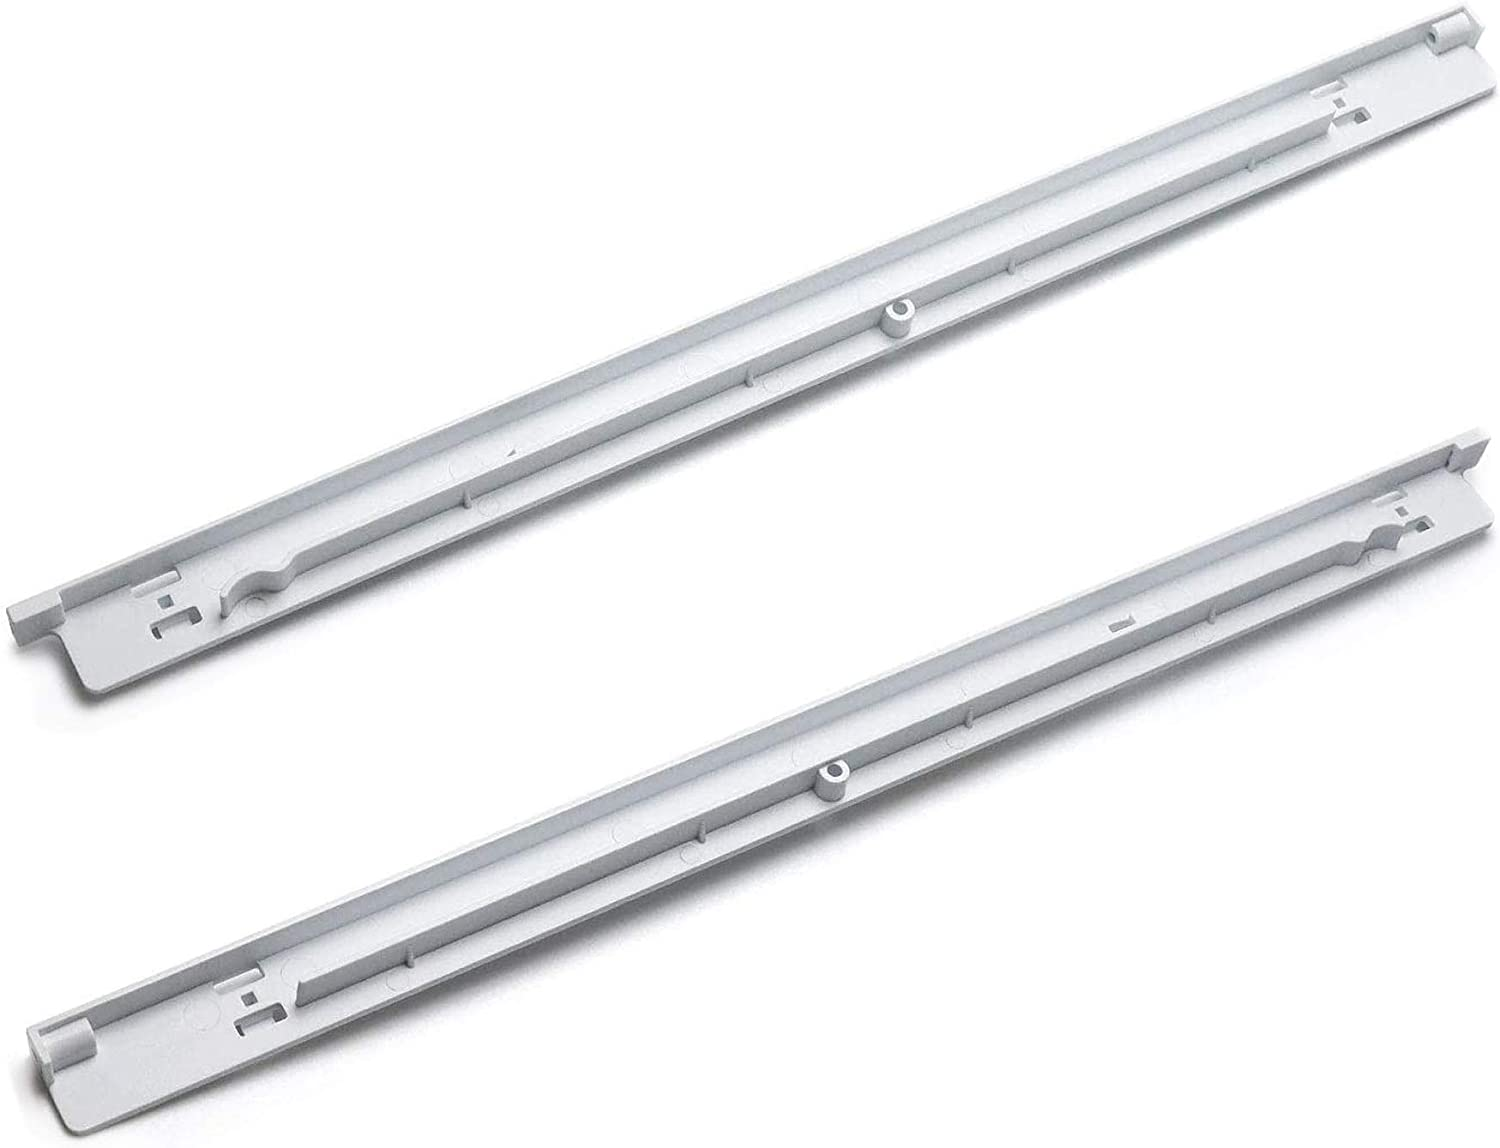 For Frigidaire Refrigerator Right And Meat Pan Hanger Rail #  LA6195112PAFR110